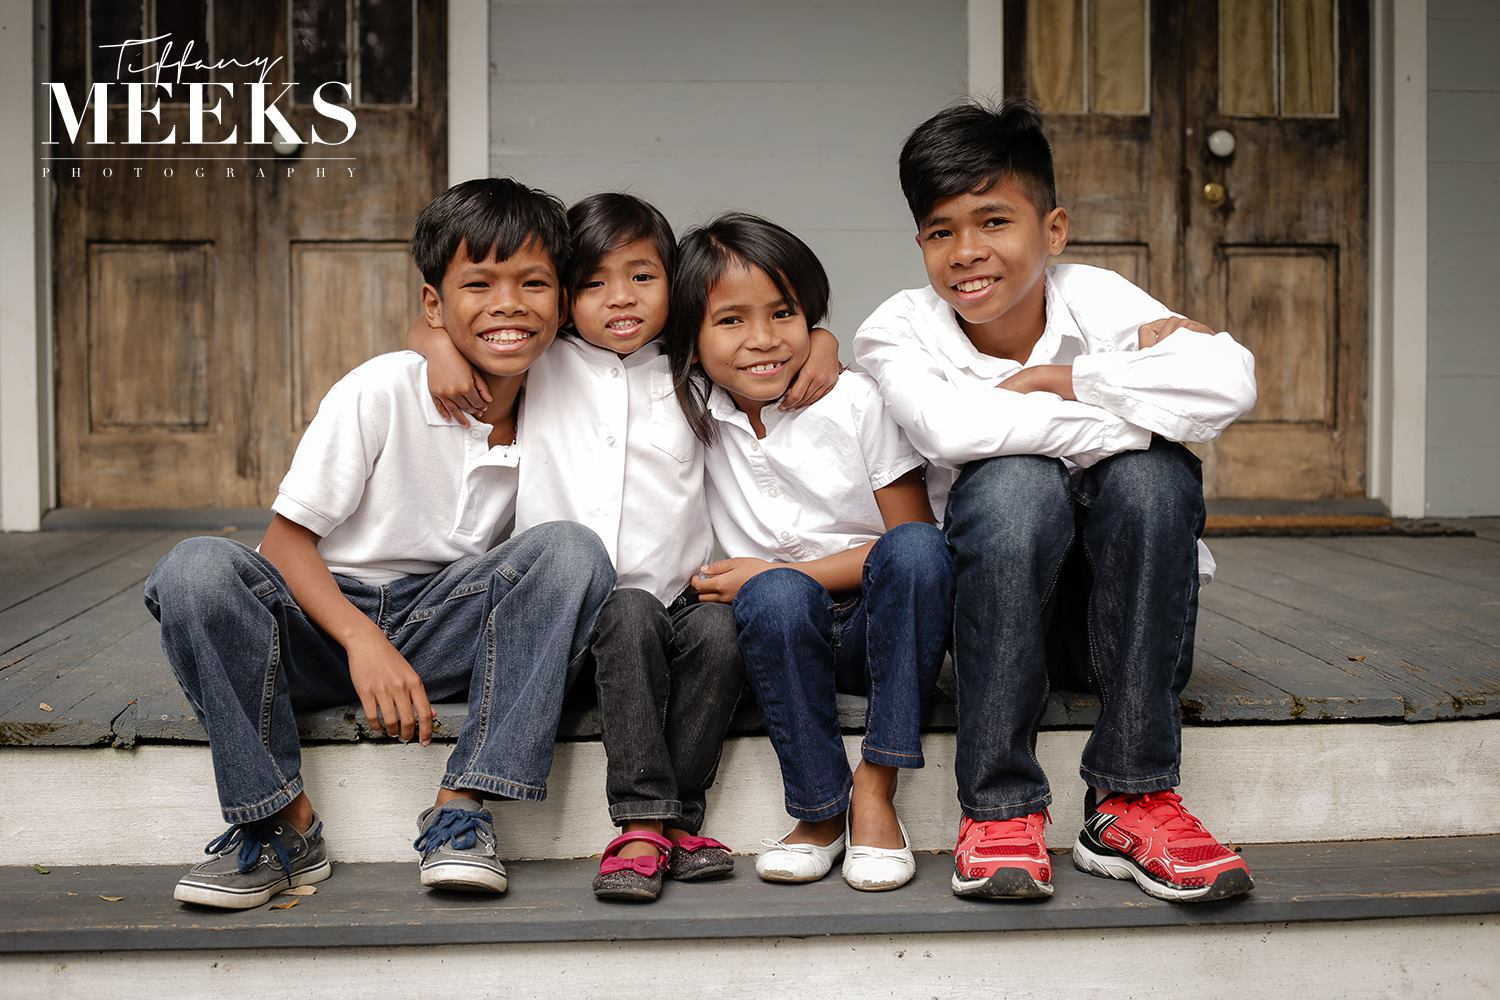 photo of kids